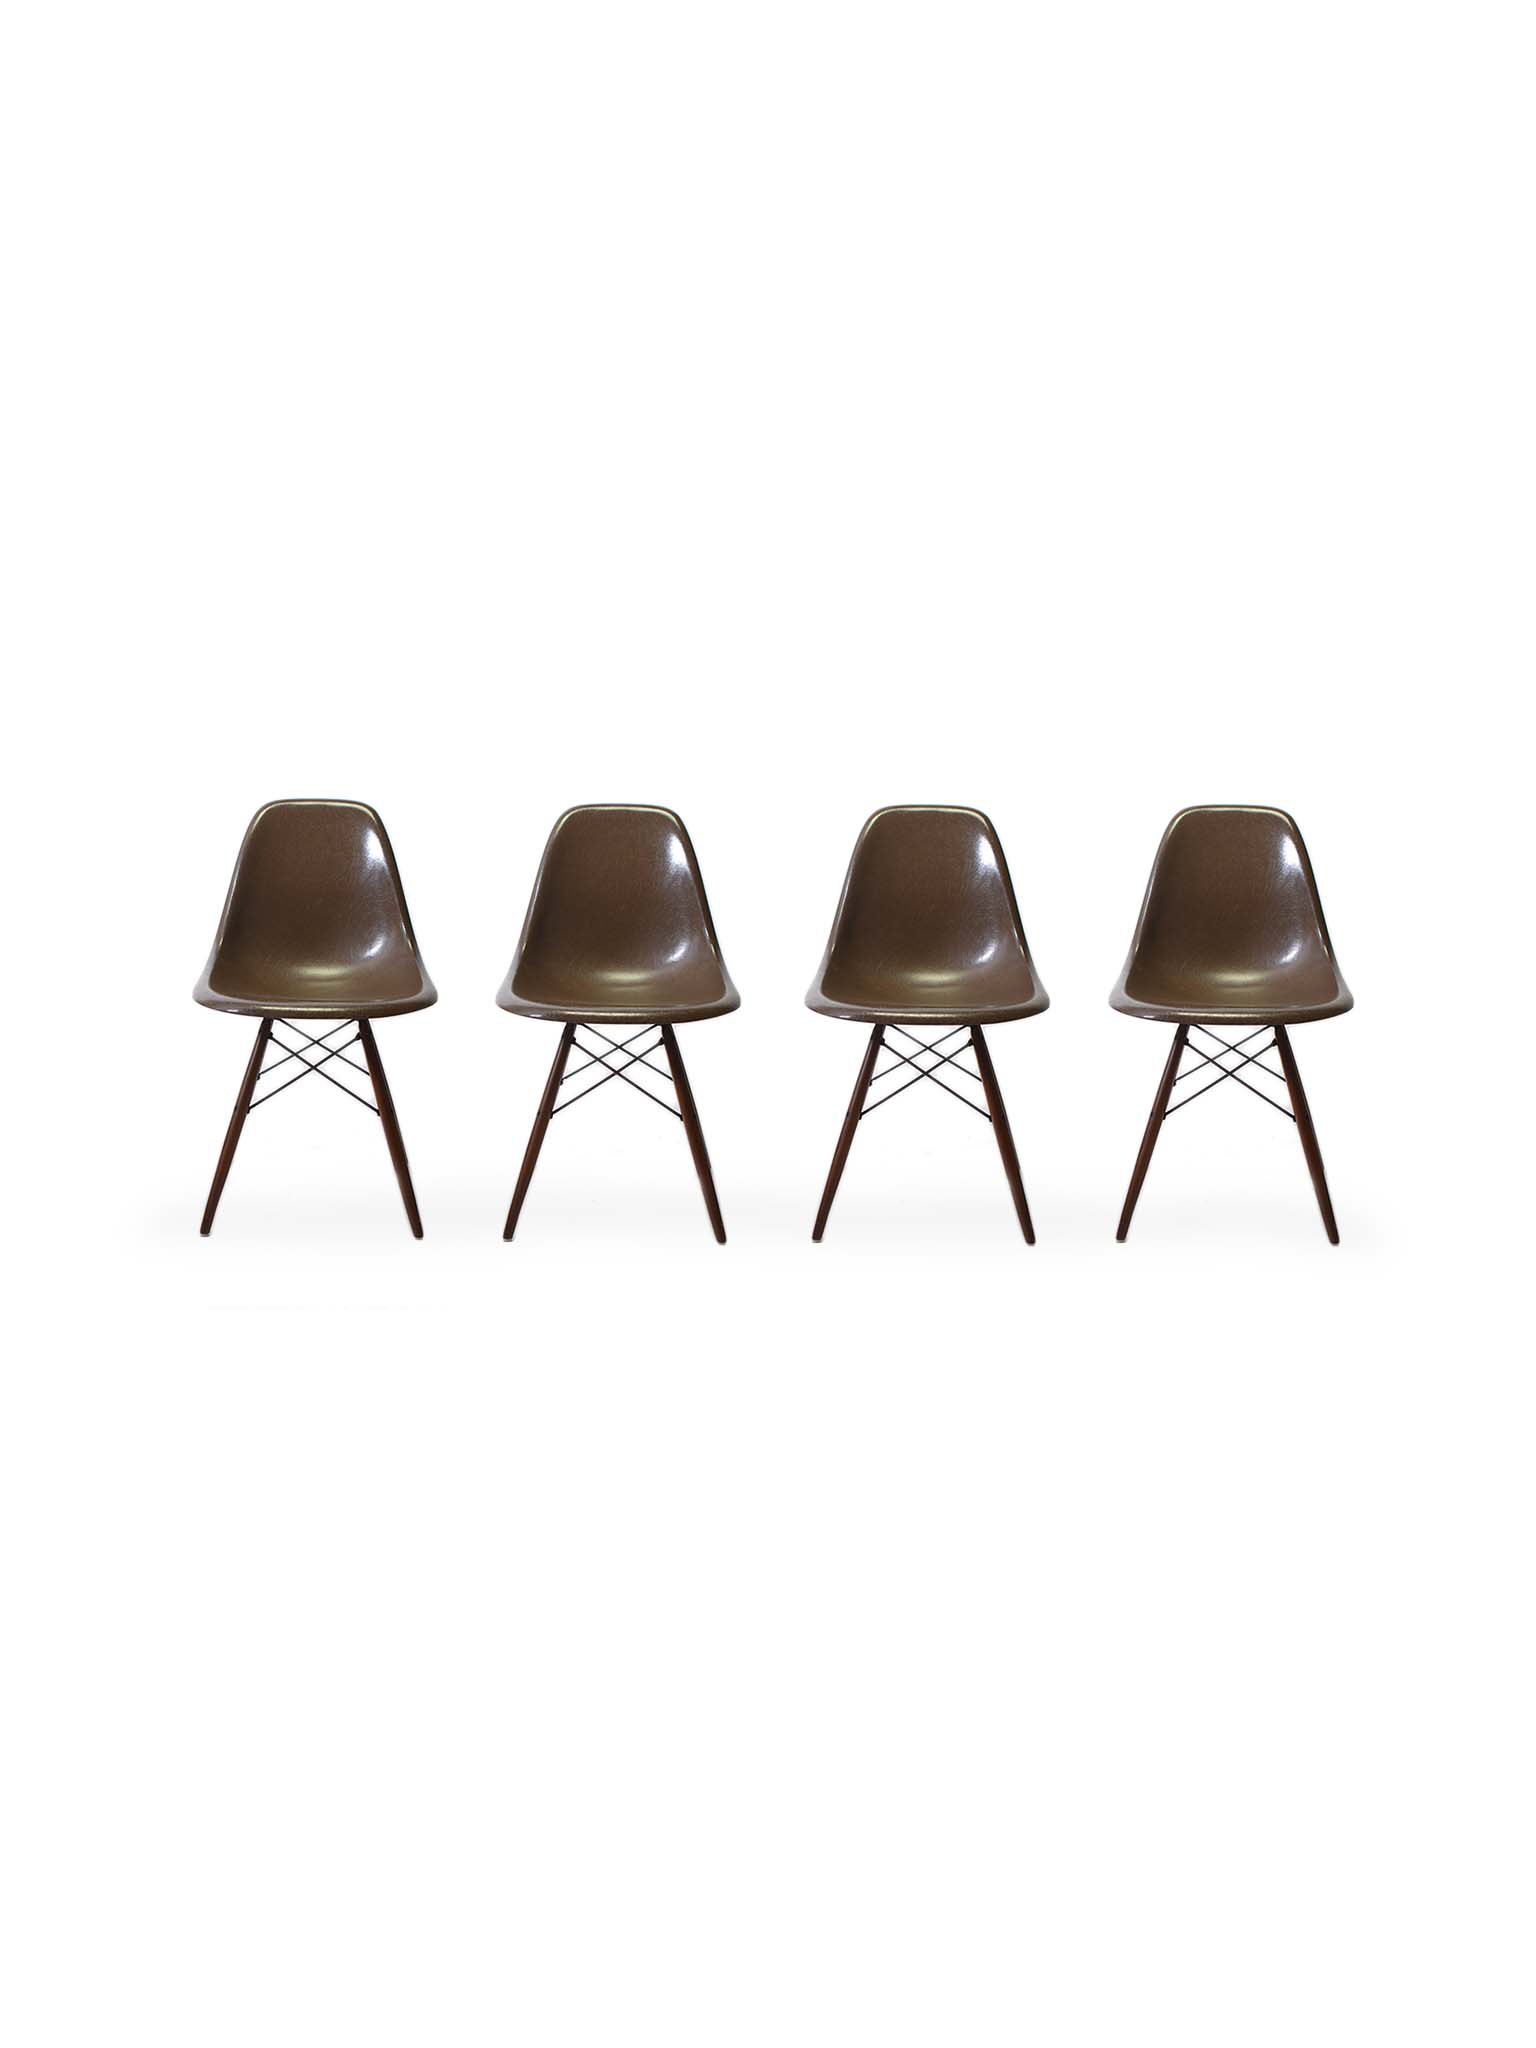 DSW CHAIRS BY RAY & CHARLES EAMES FOR HERMAN MILLER